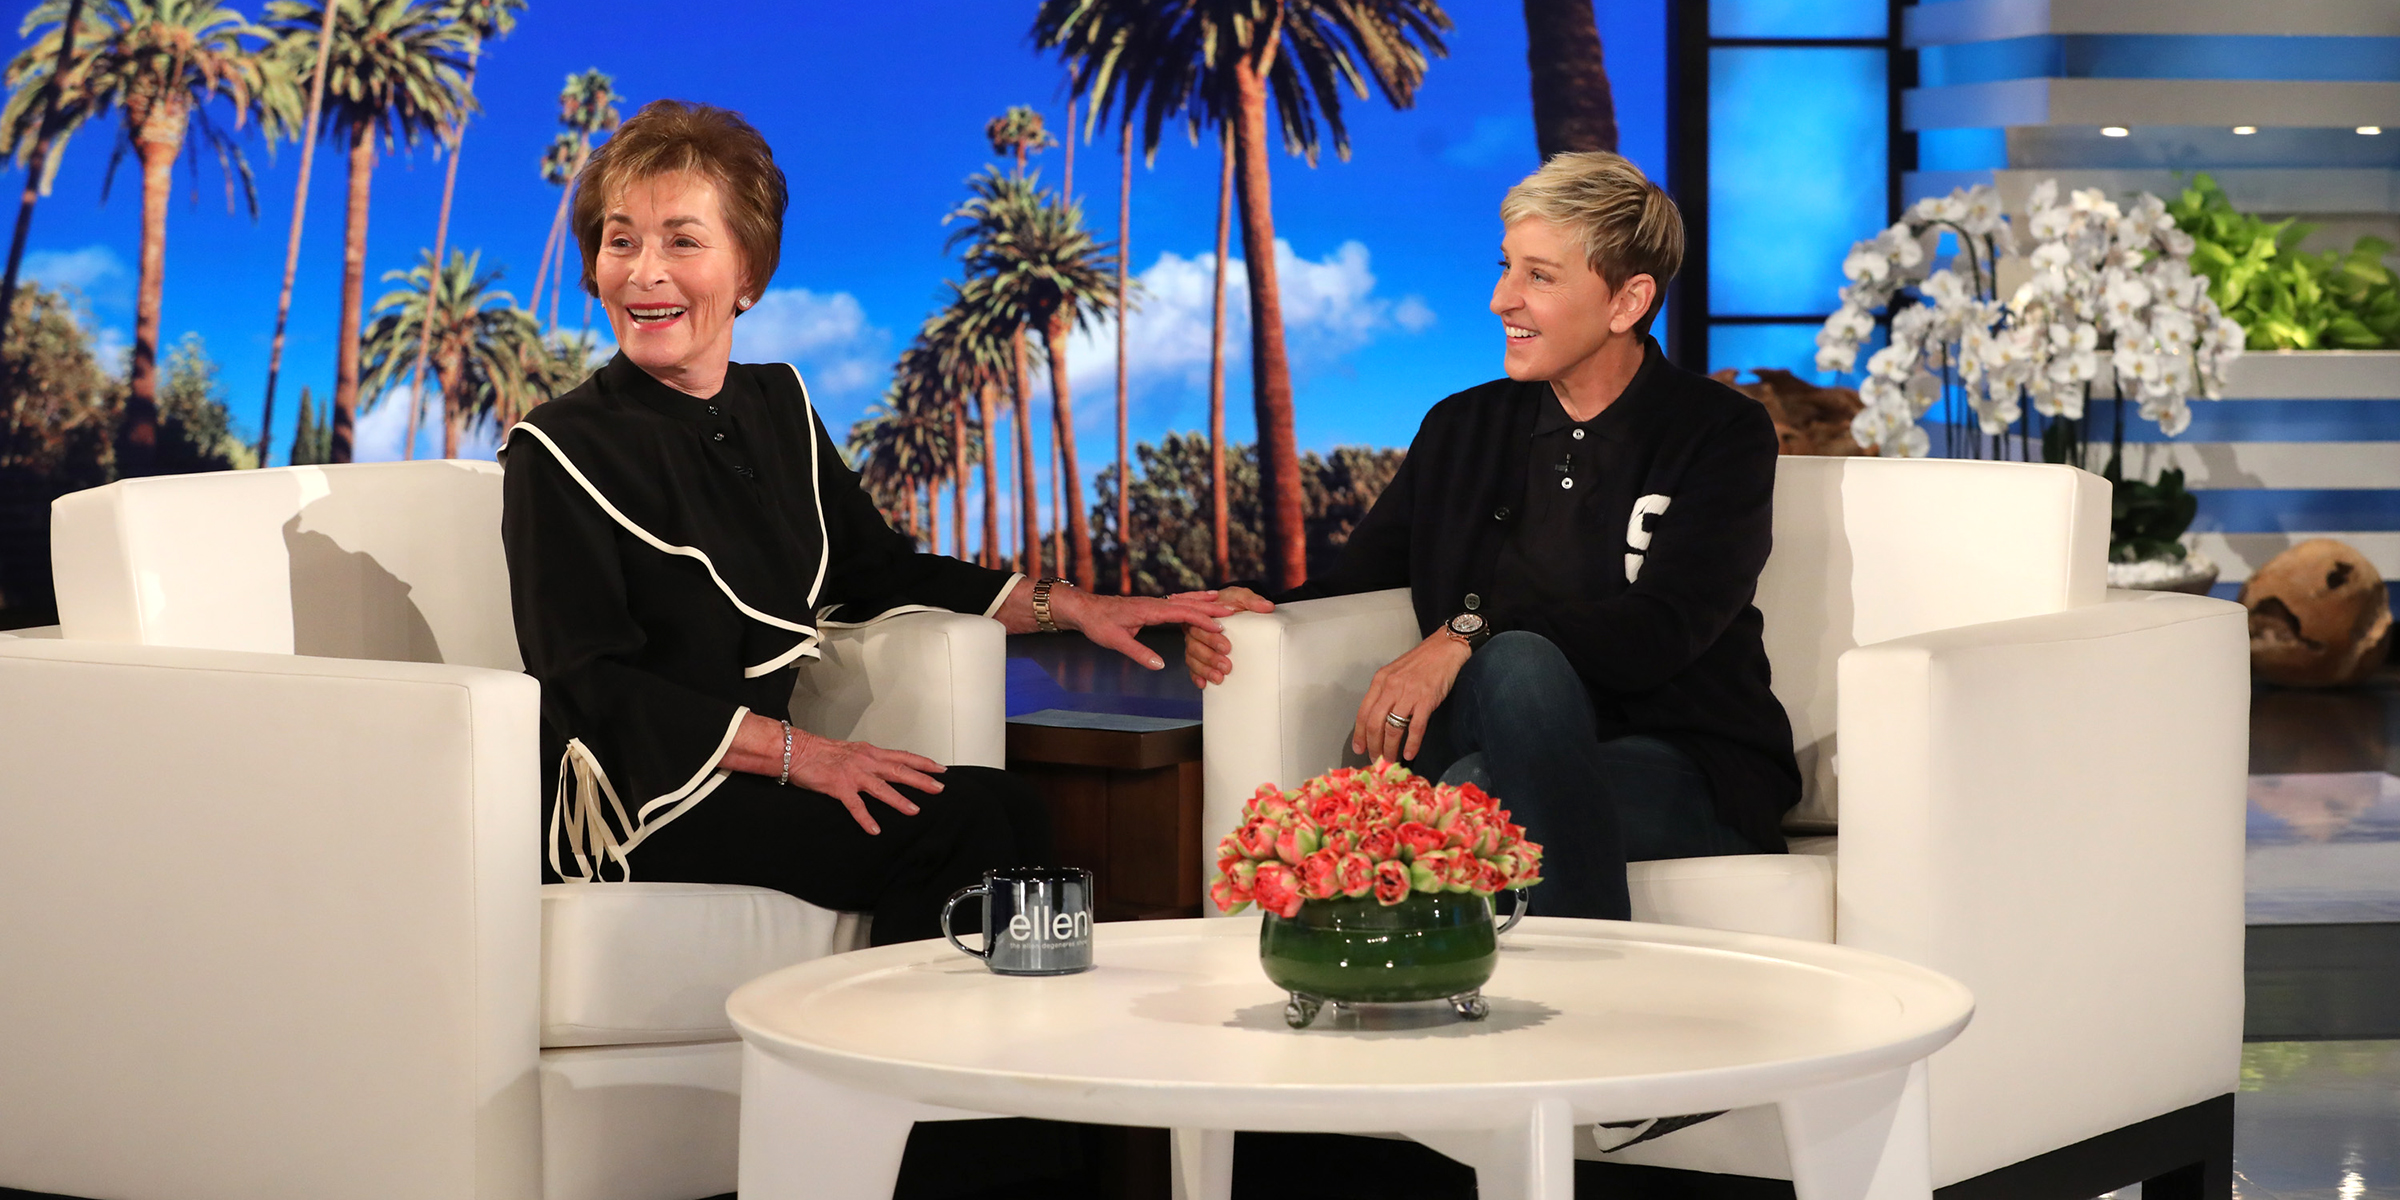 Judge Judy explains why she's not retiring any time soon